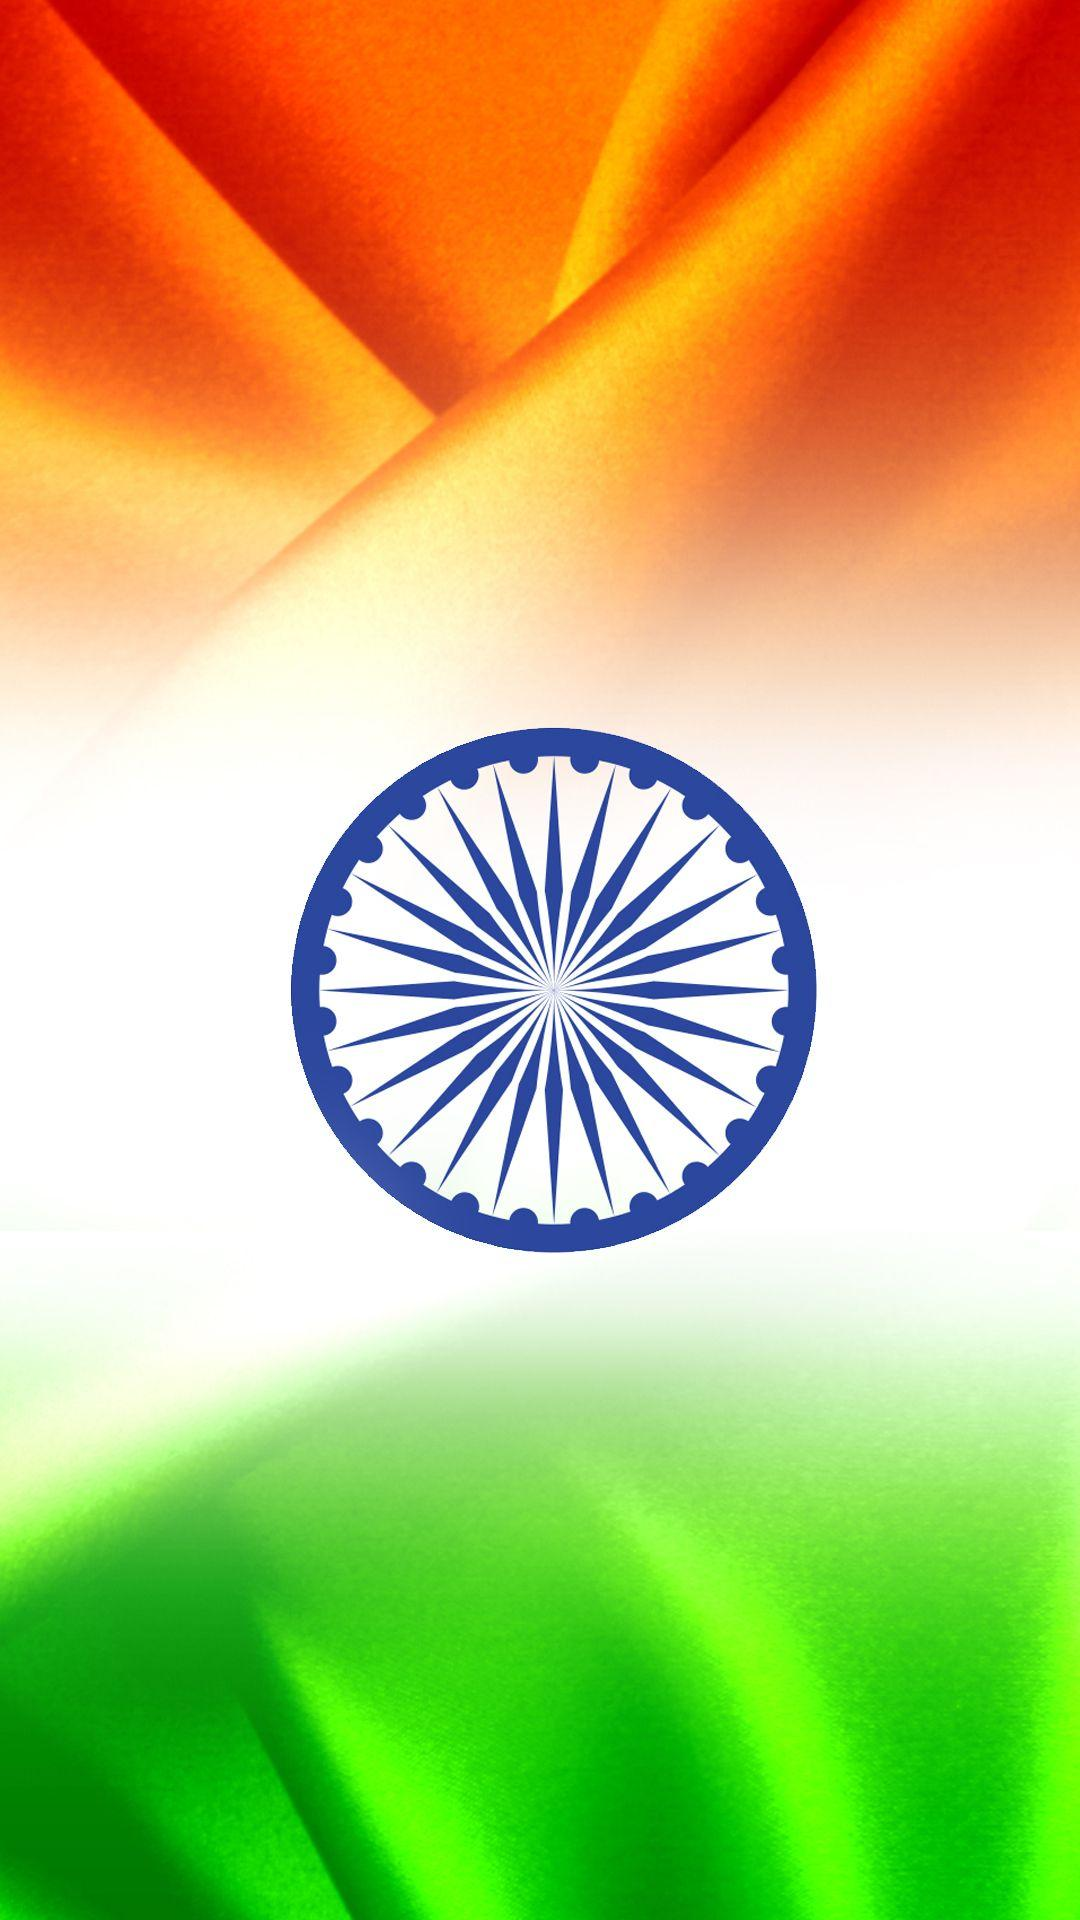 Indian Flag Hd Mobile Wallpapers Wallpaper Cave